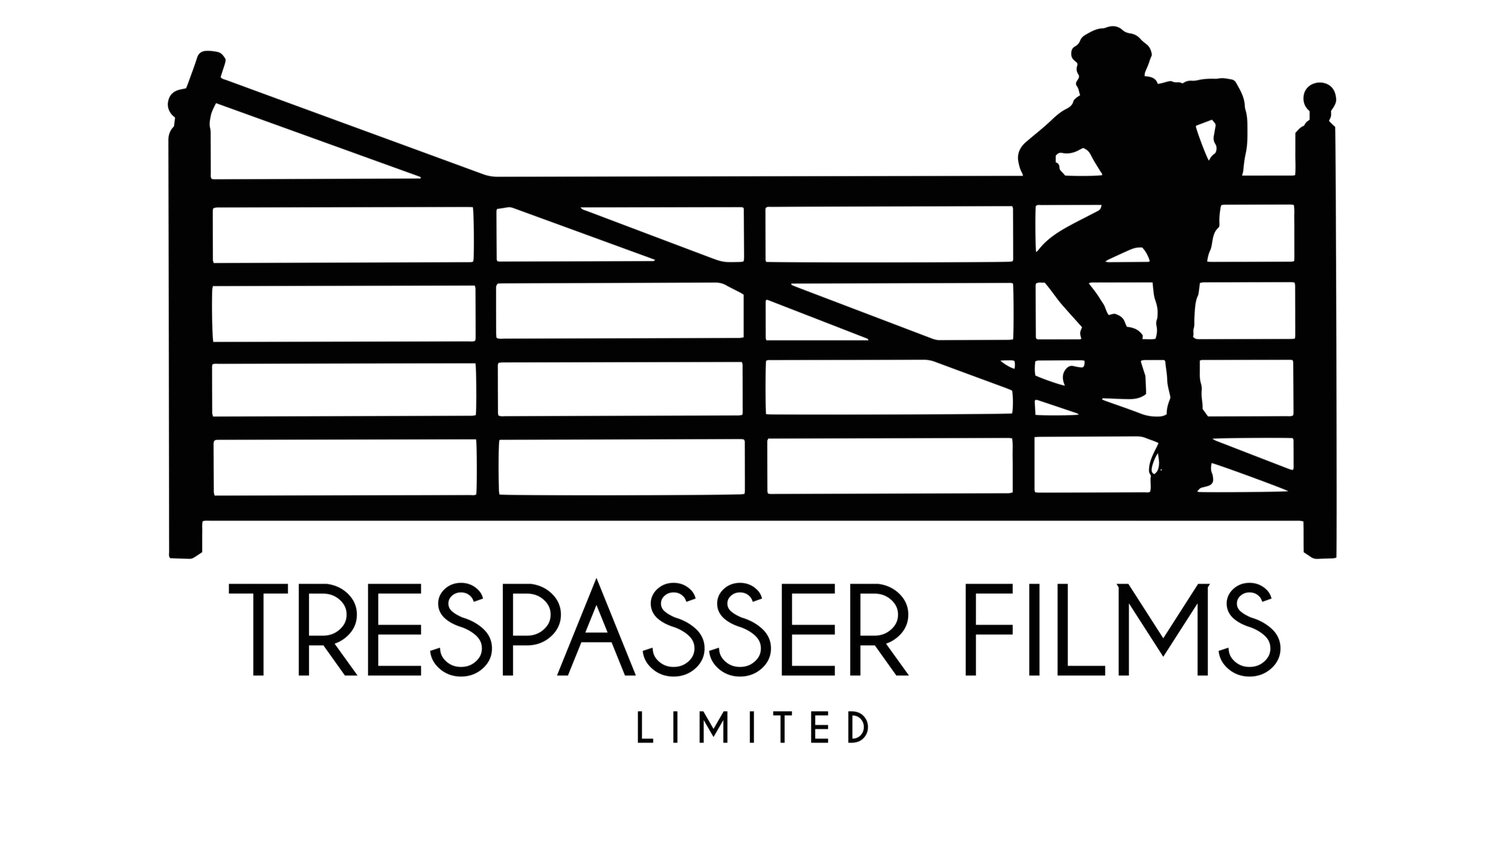 Trespasser Films Limited